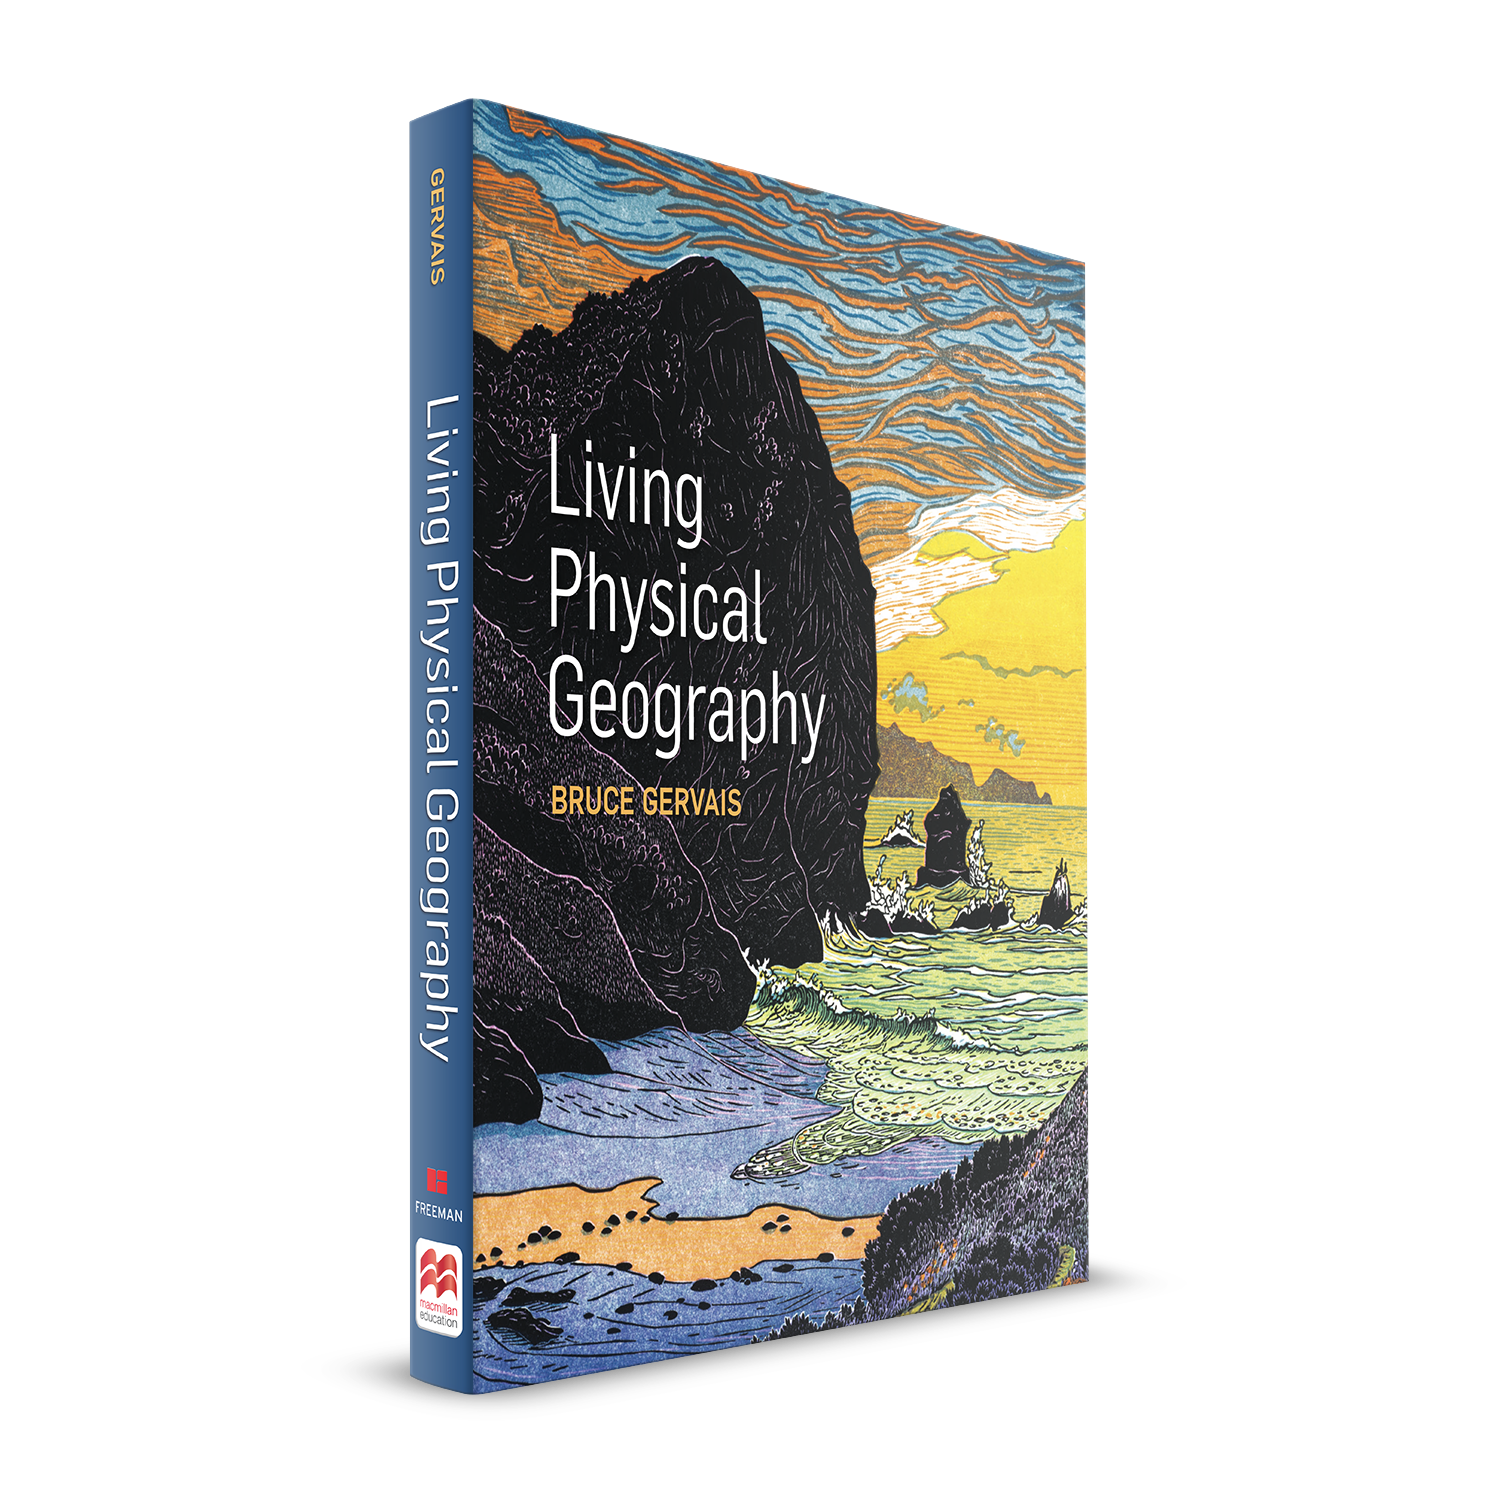 Feature-packed College-level Geography